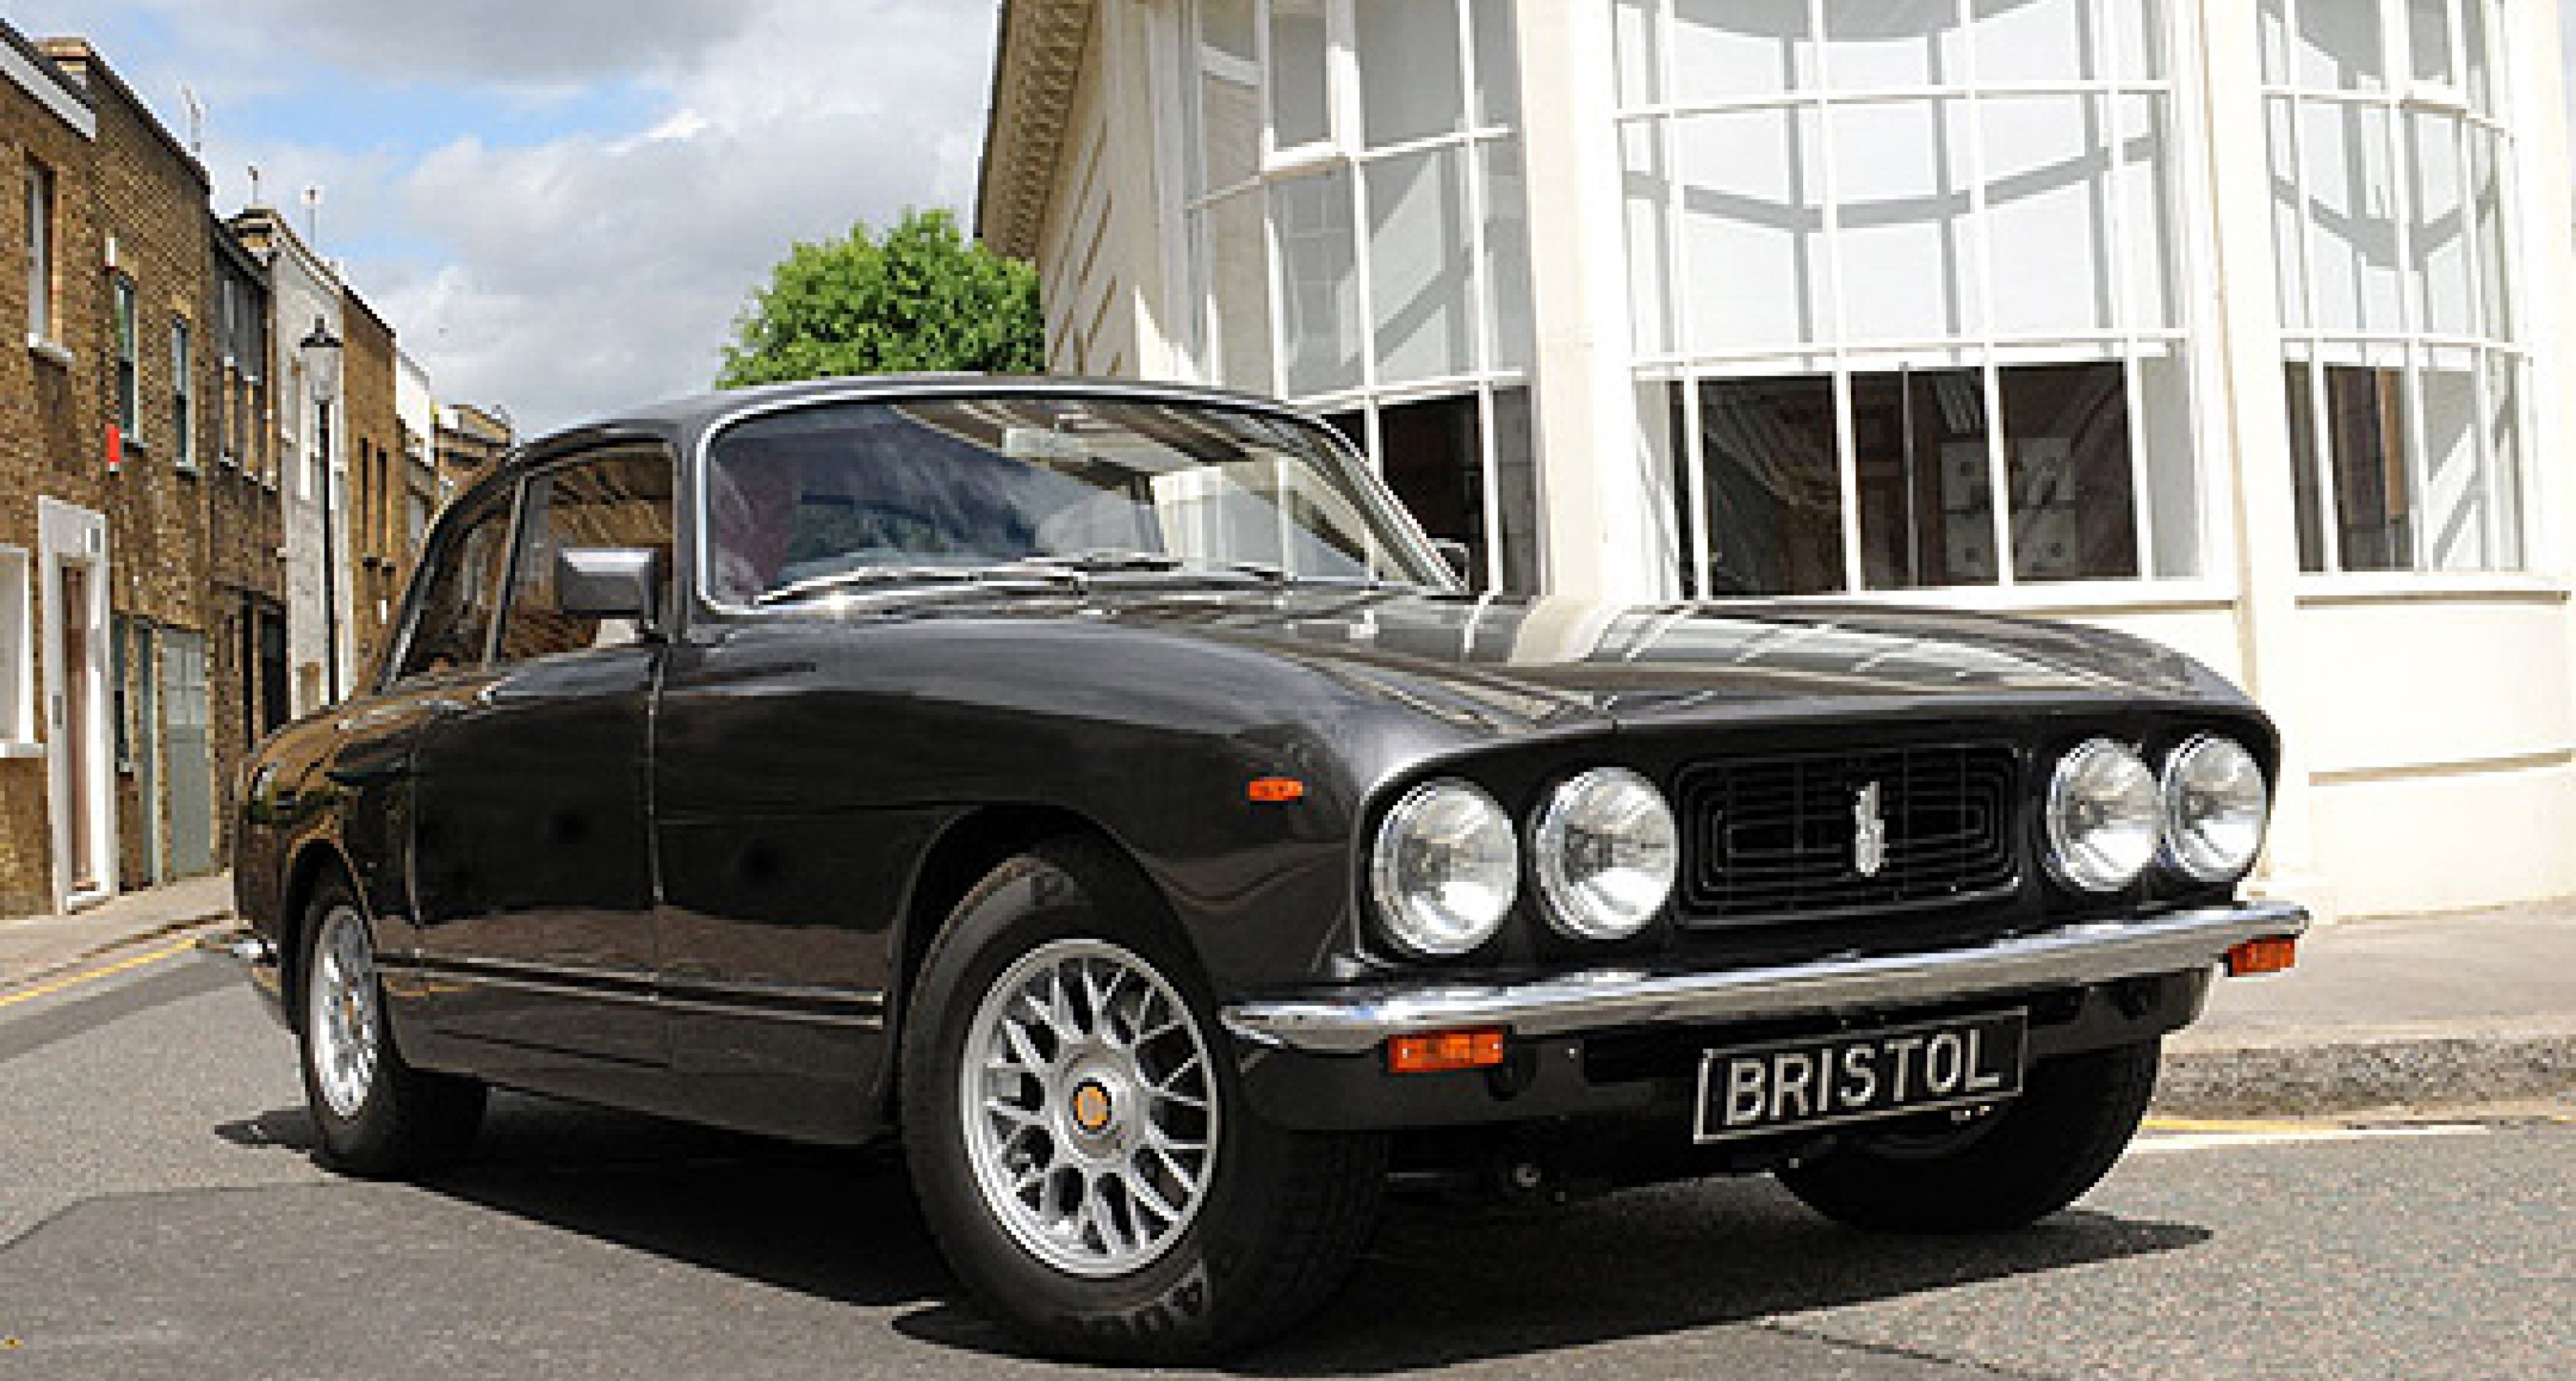 Bristol Cars Goes Into Administration